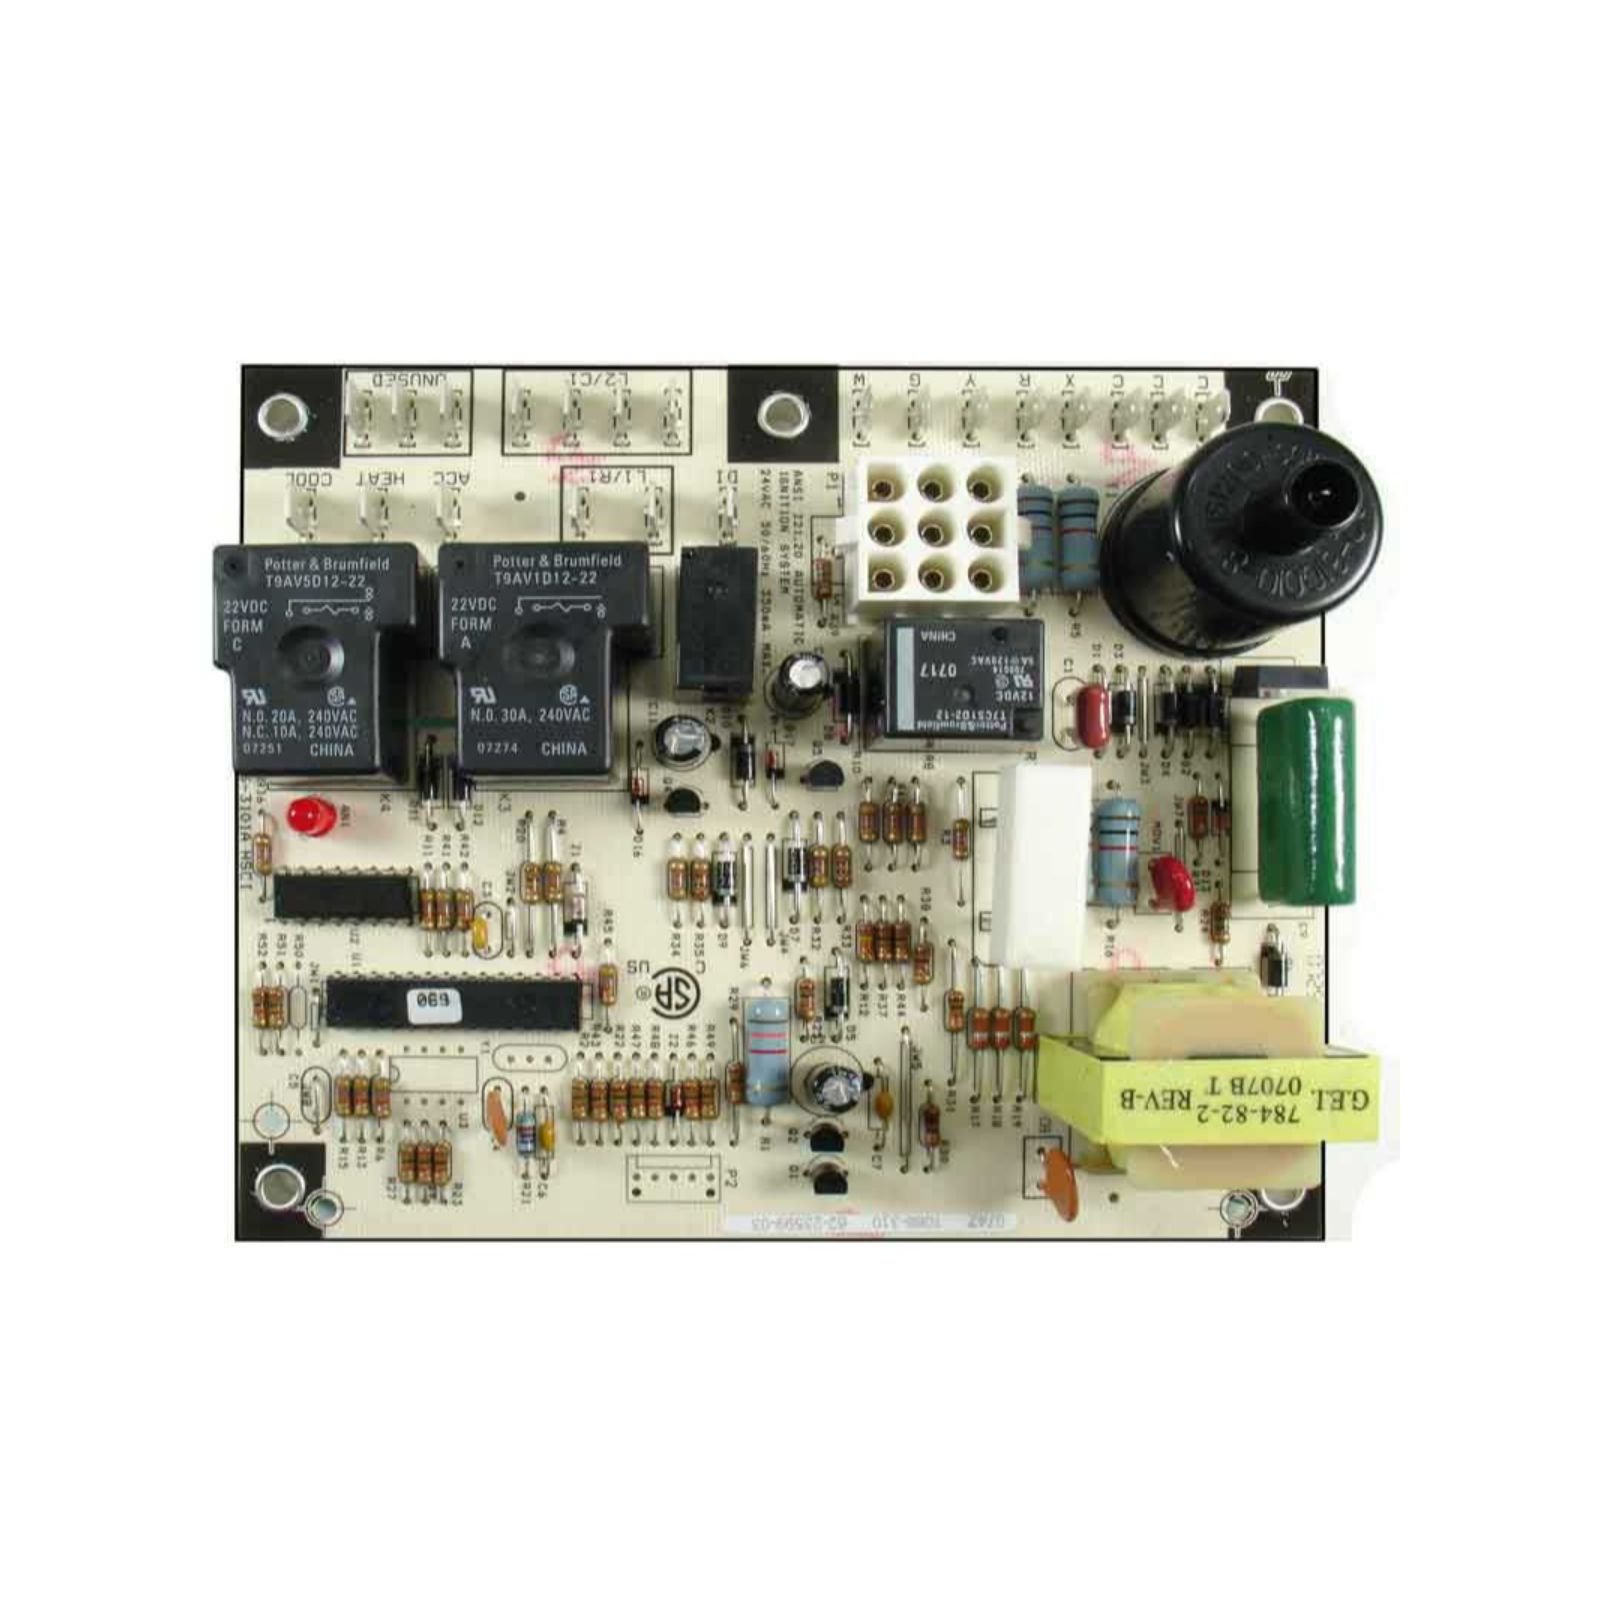 UTEC 62-23599-03 - Integrated Furnace Control Board (IFC)